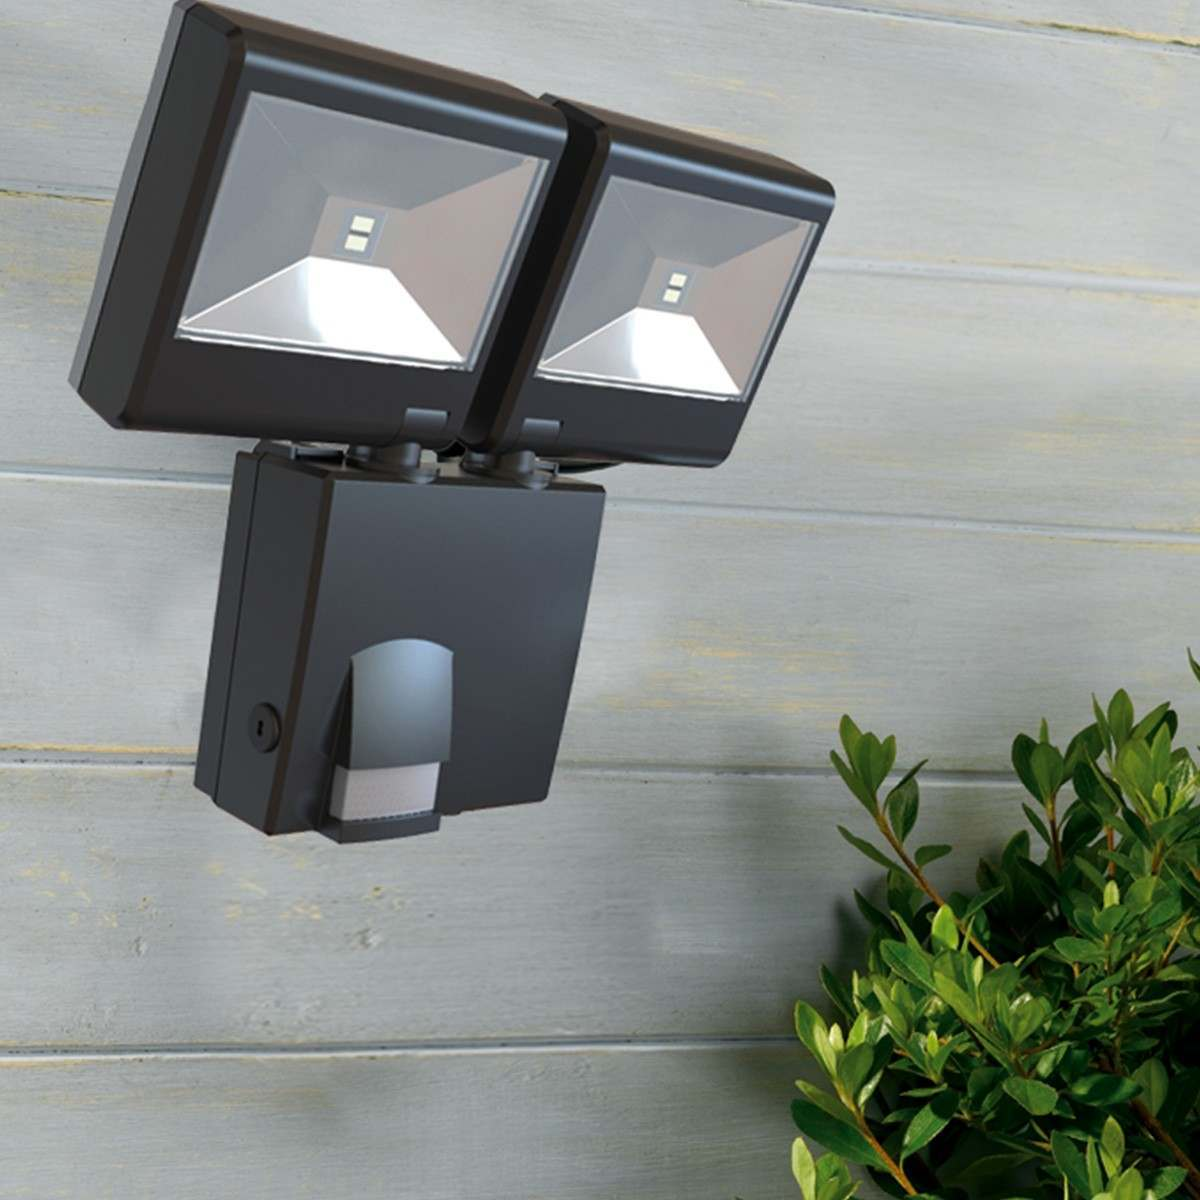 Outdoor Security Lights Pir: Outdoor Battery Security Light With PIR Motion Sensor